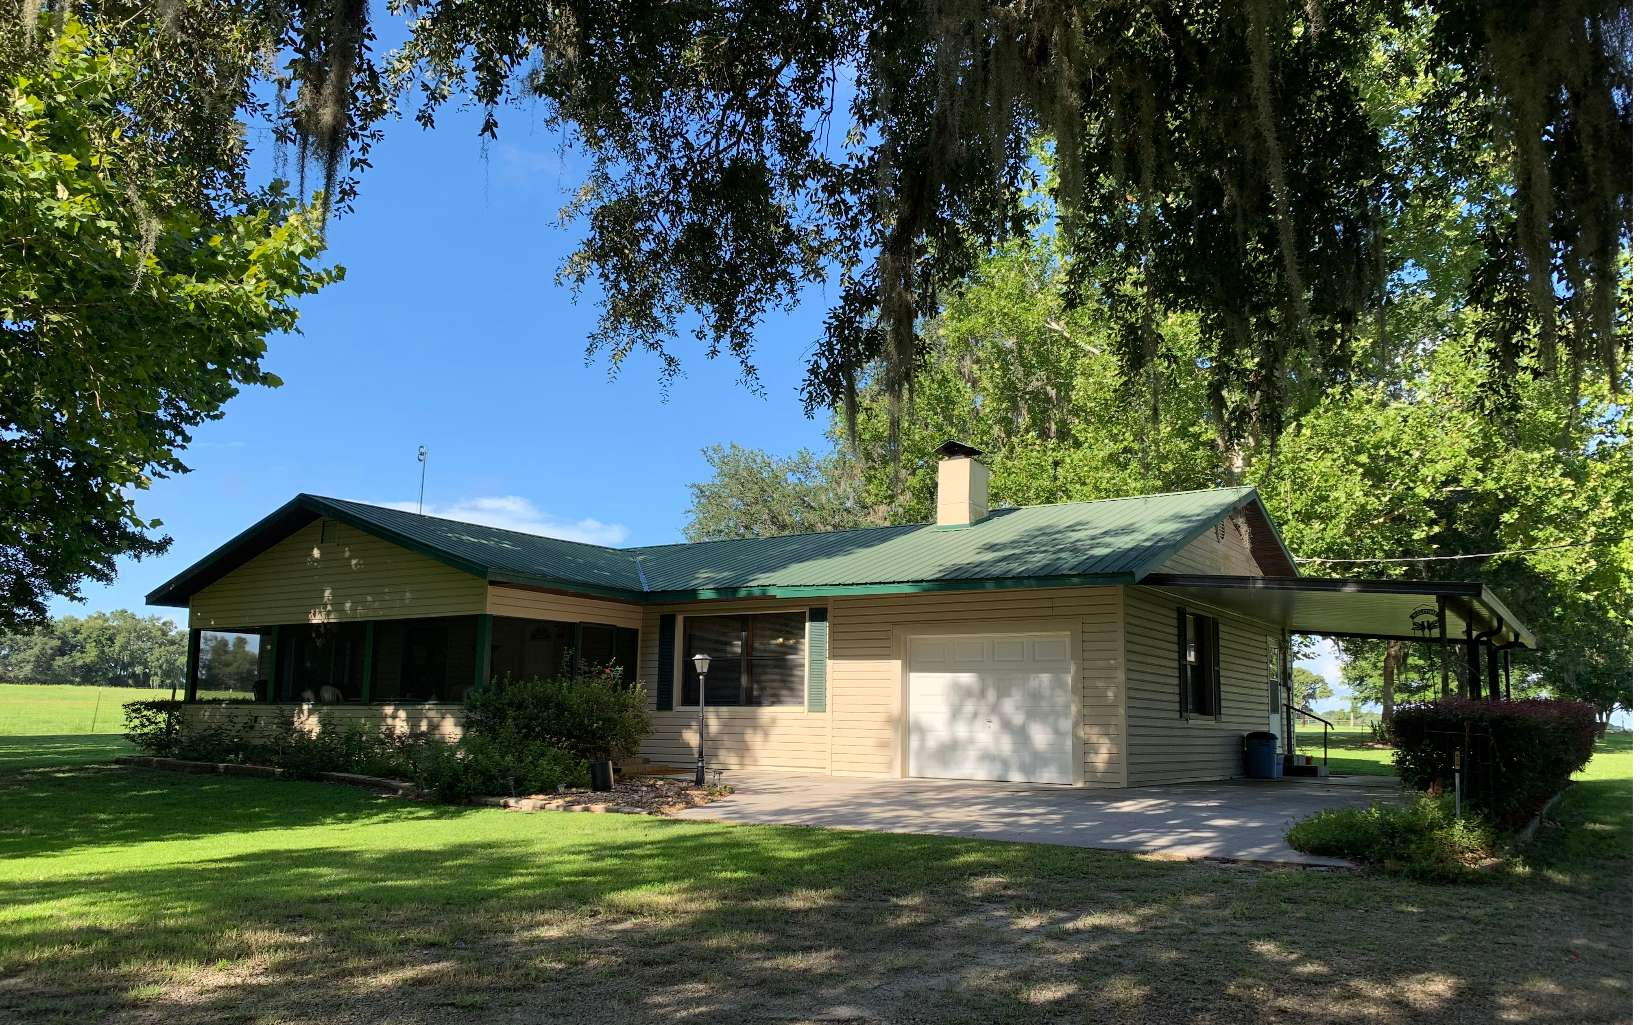 Homes For Sale in Lake City, North Florida Real Estate  